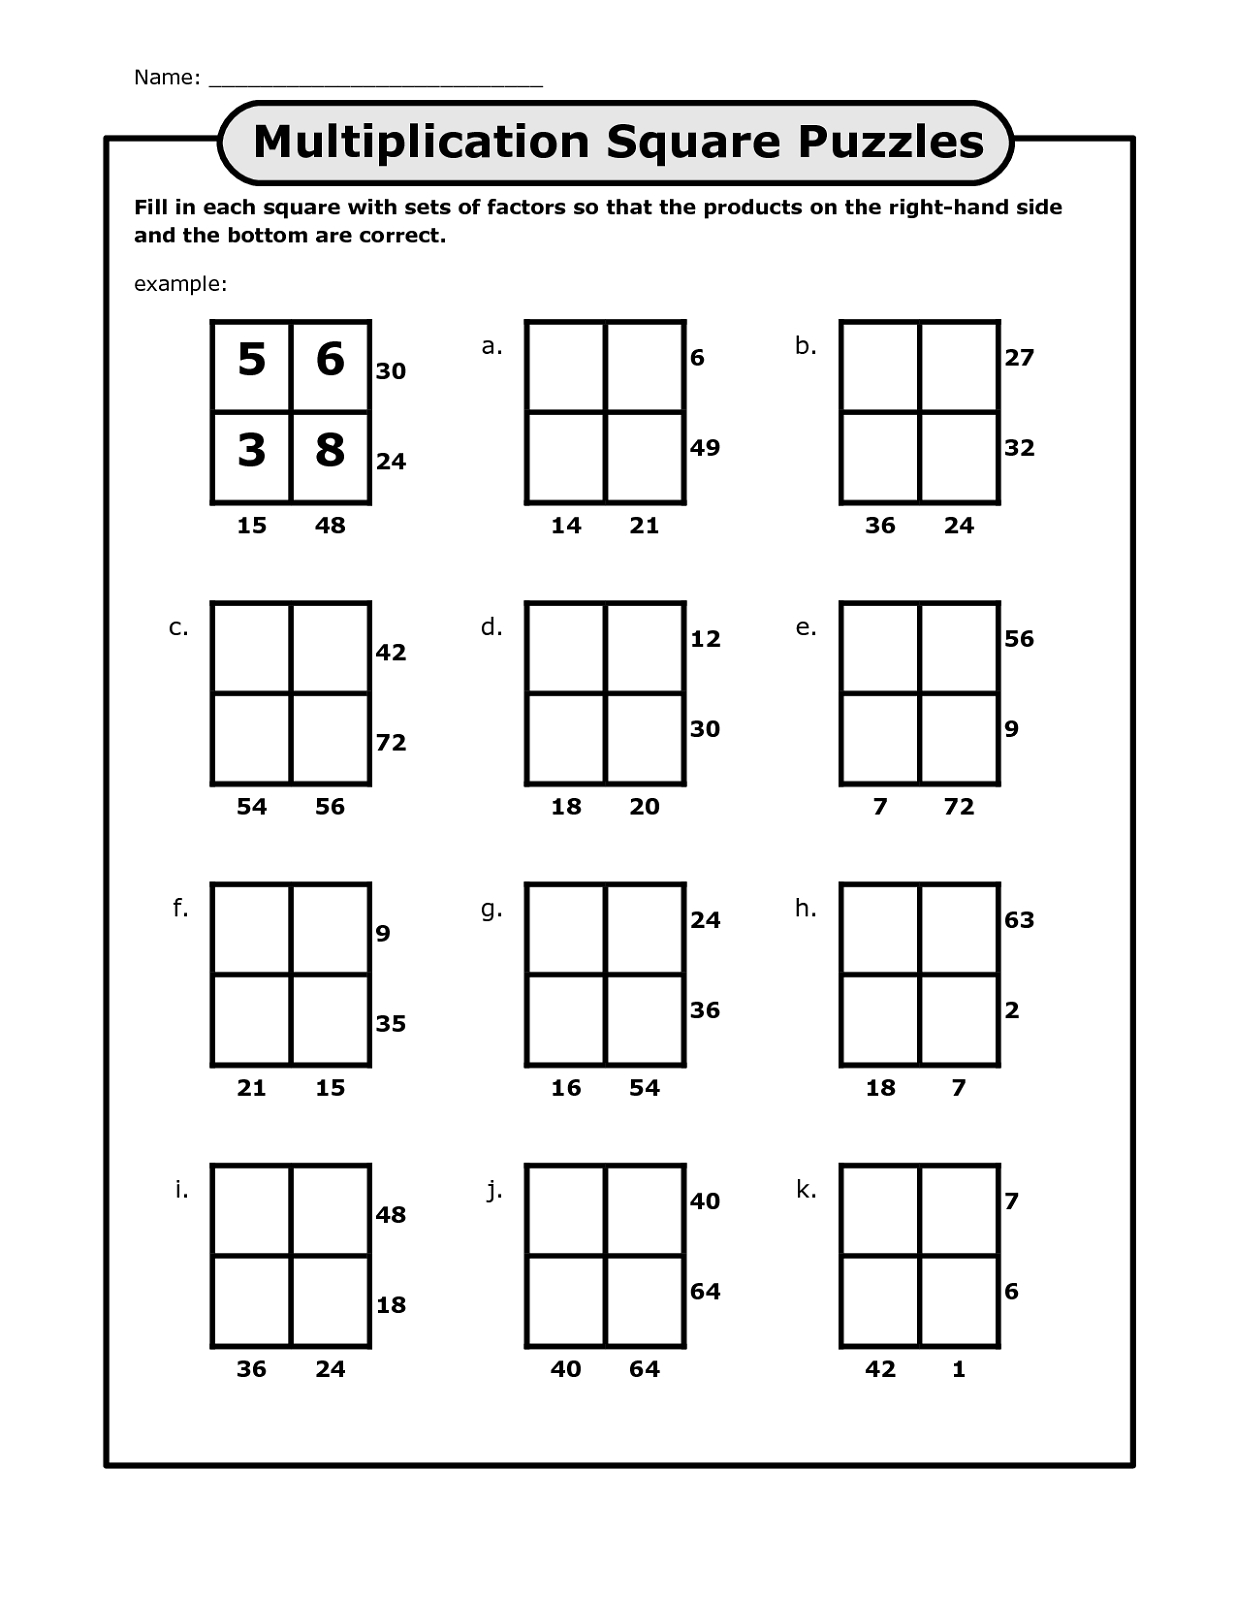 Math Puzzles Printable For Learning   Activity Shelter - Printable Multiplication Puzzle